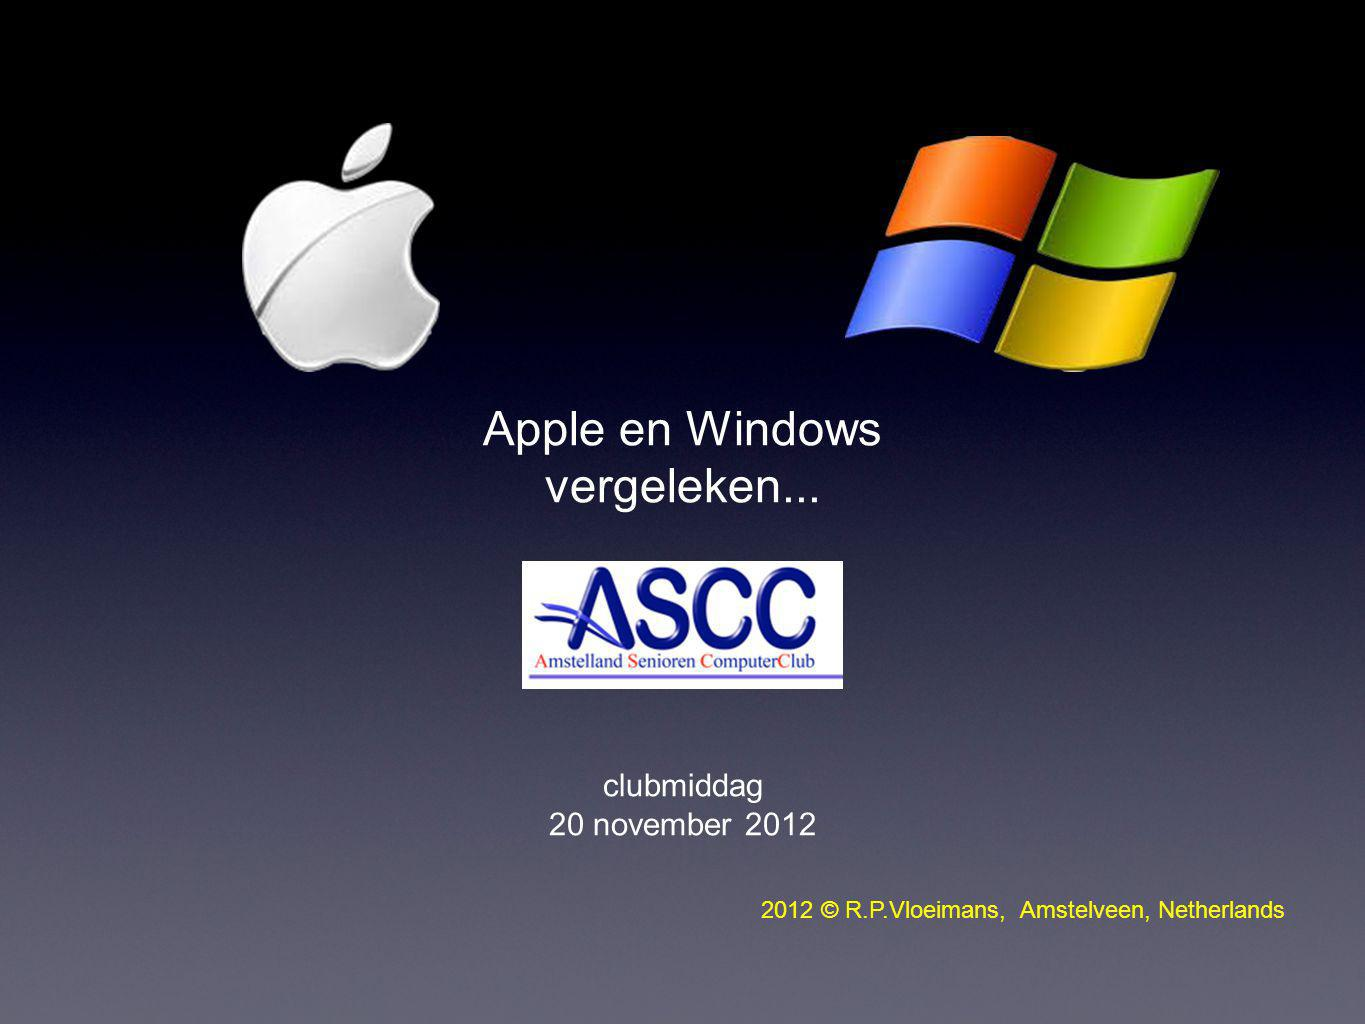 Apple en Windows vergeleken... clubmiddag 20 november 2012 2012 © R.P.Vloeimans, Amstelveen, Netherlands